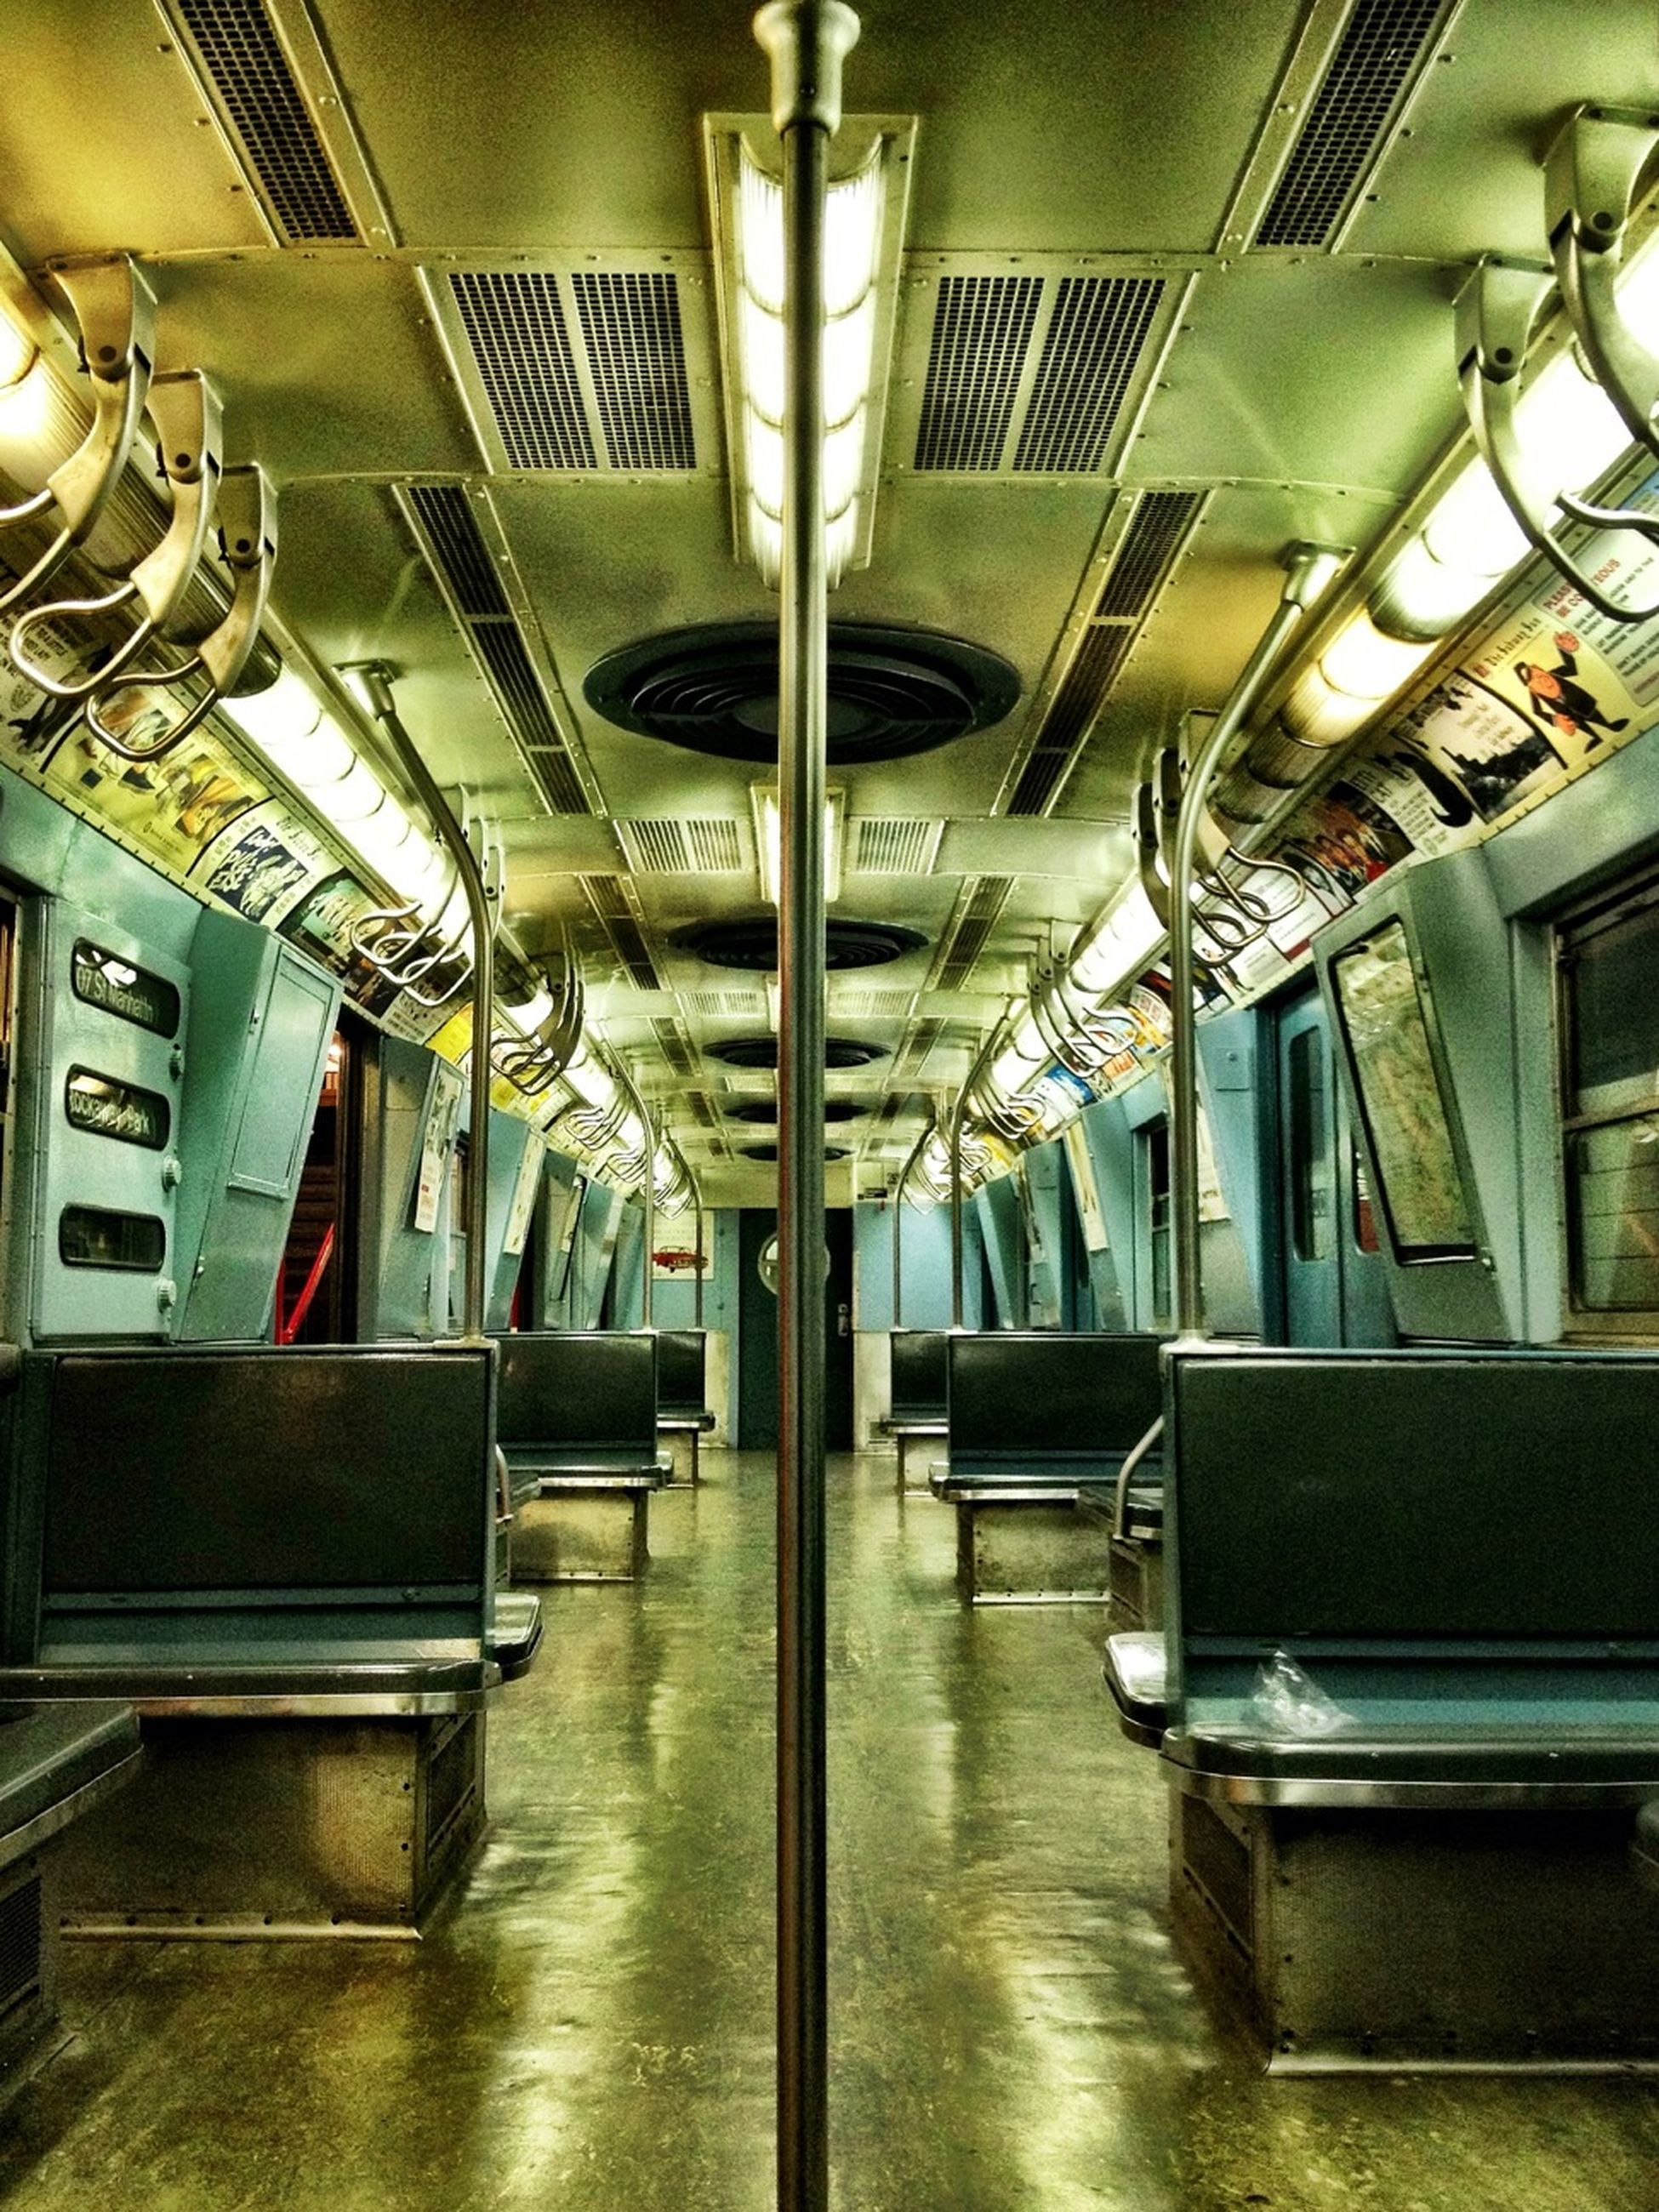 indoors, ceiling, illuminated, interior, empty, absence, architecture, lighting equipment, built structure, flooring, modern, window, subway, corridor, reflection, chair, no people, transportation, vehicle seat, in a row